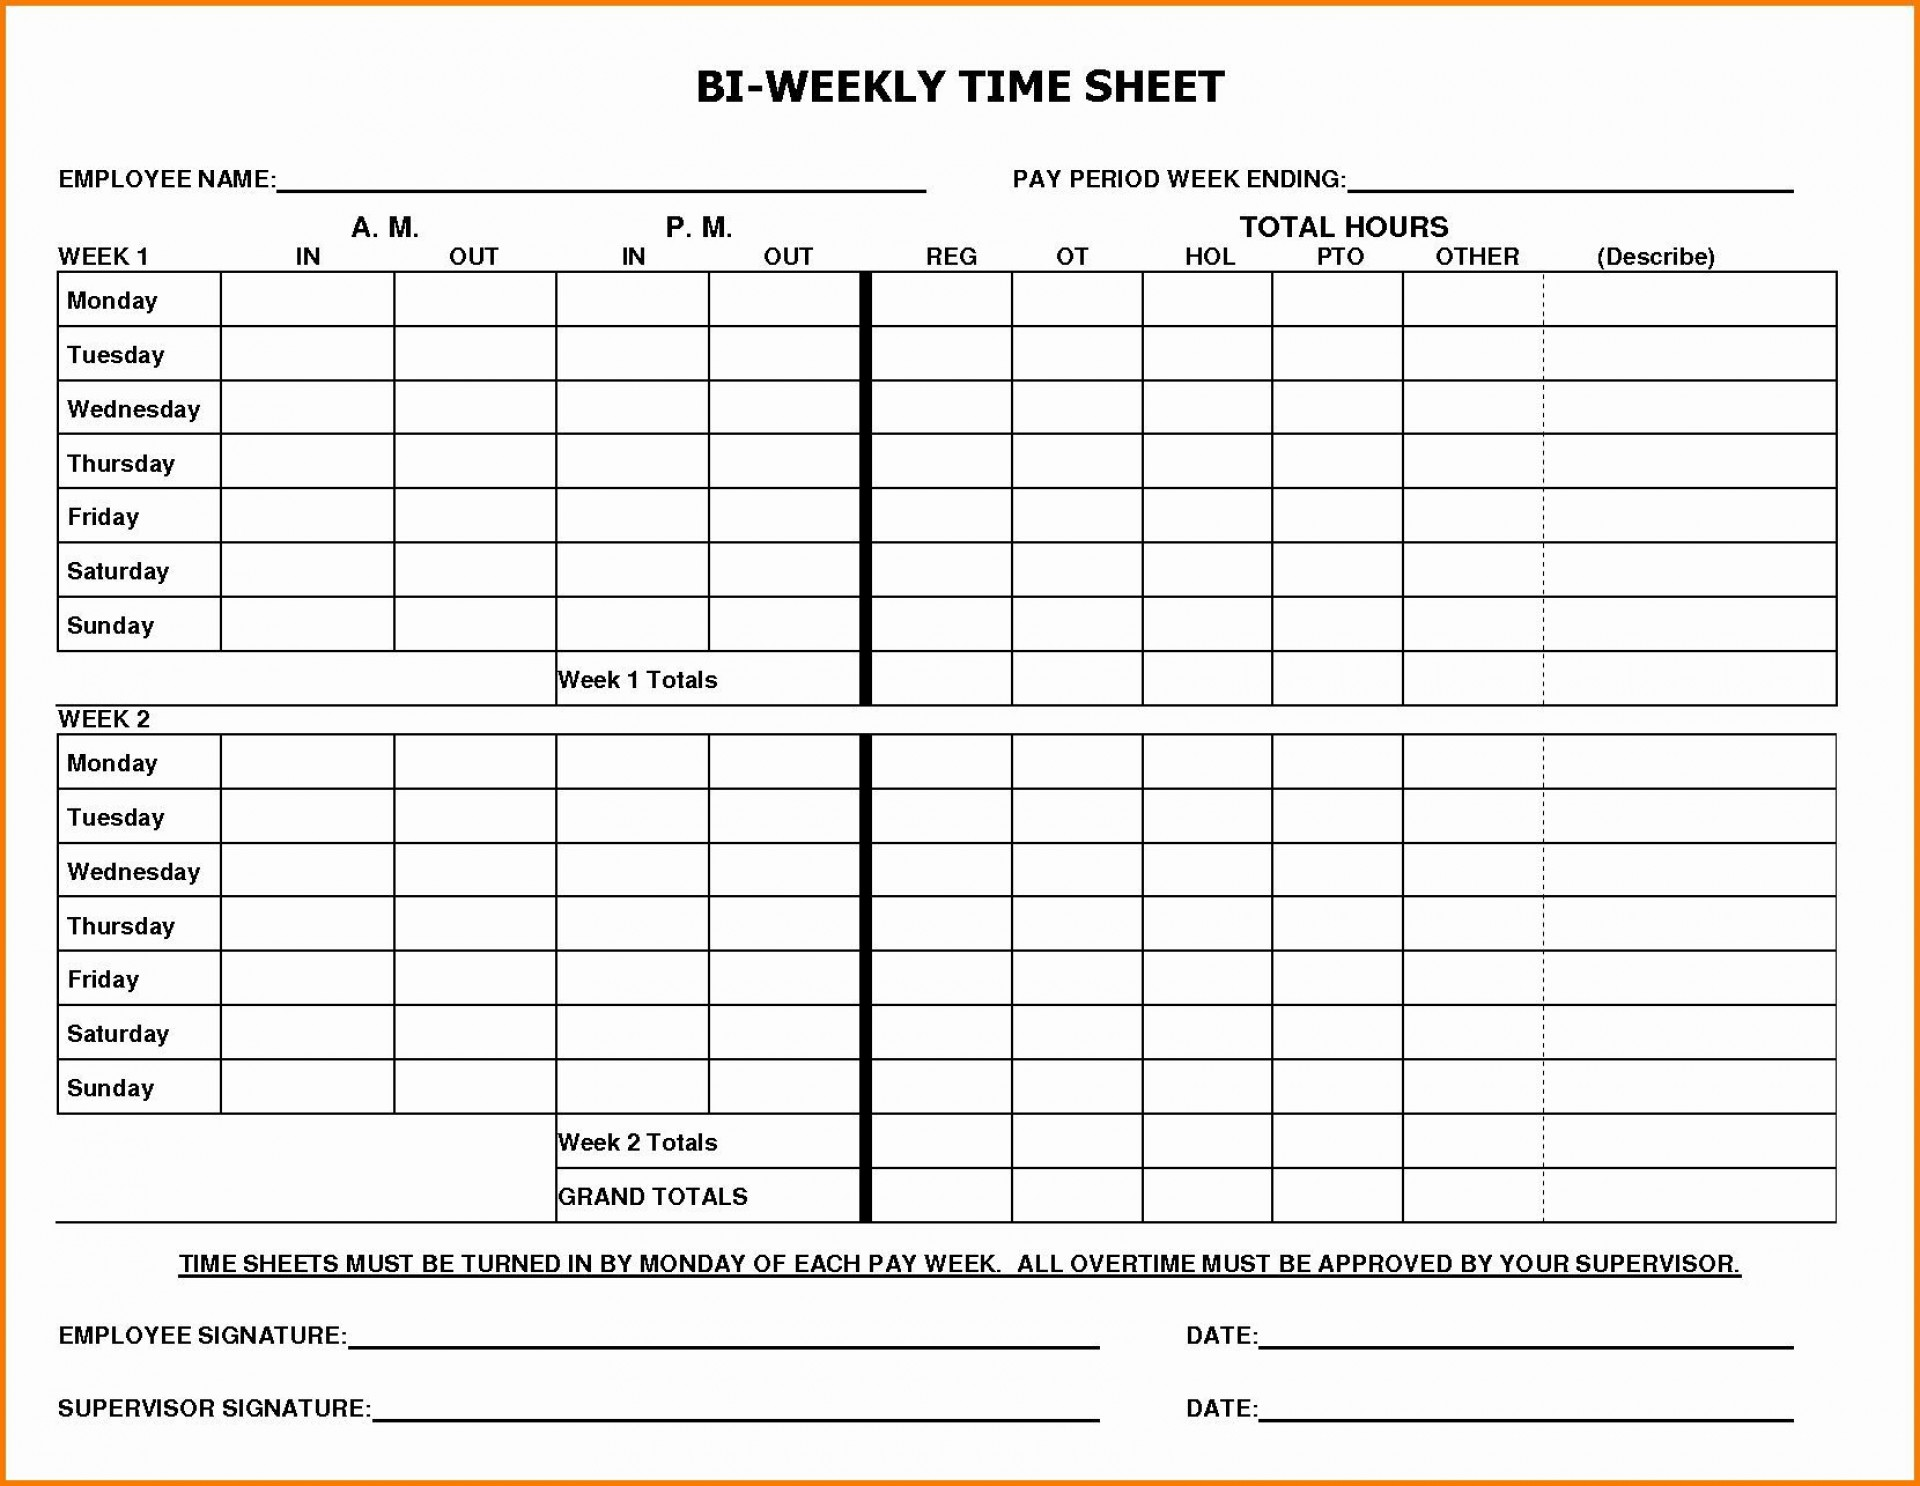 002 Marvelou Free Biweekly Timesheet Template High Definition  Bi Weekly Time Card Excel1920